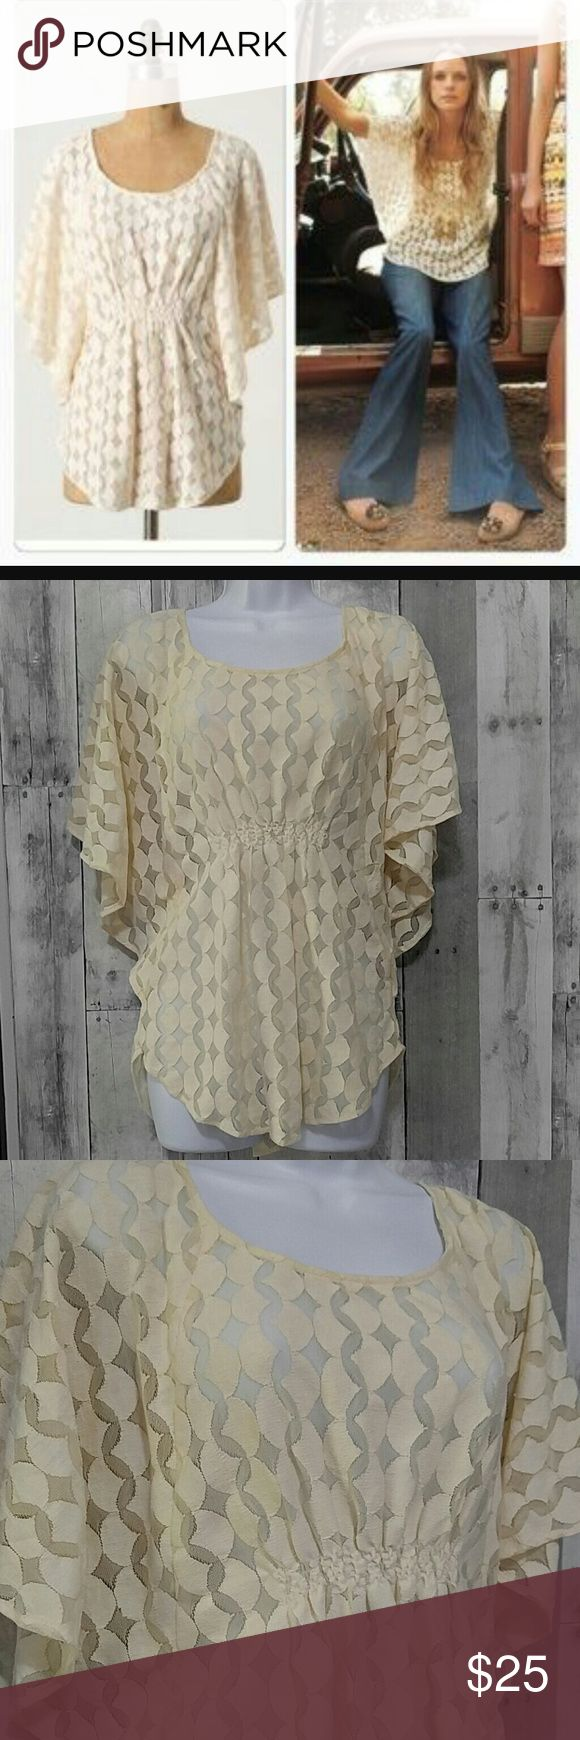 """Anthro The Addison Story Lunar Cycles Top S Beautiful cream size small Anthropologie The Addison Story Lunar Cycles top. Pullover, textured material  Gently pre owned   Light gathering on the front with batwing sleeves Beautiful blouse   28"""" long  NO TRADES Anthropologie Tops"""